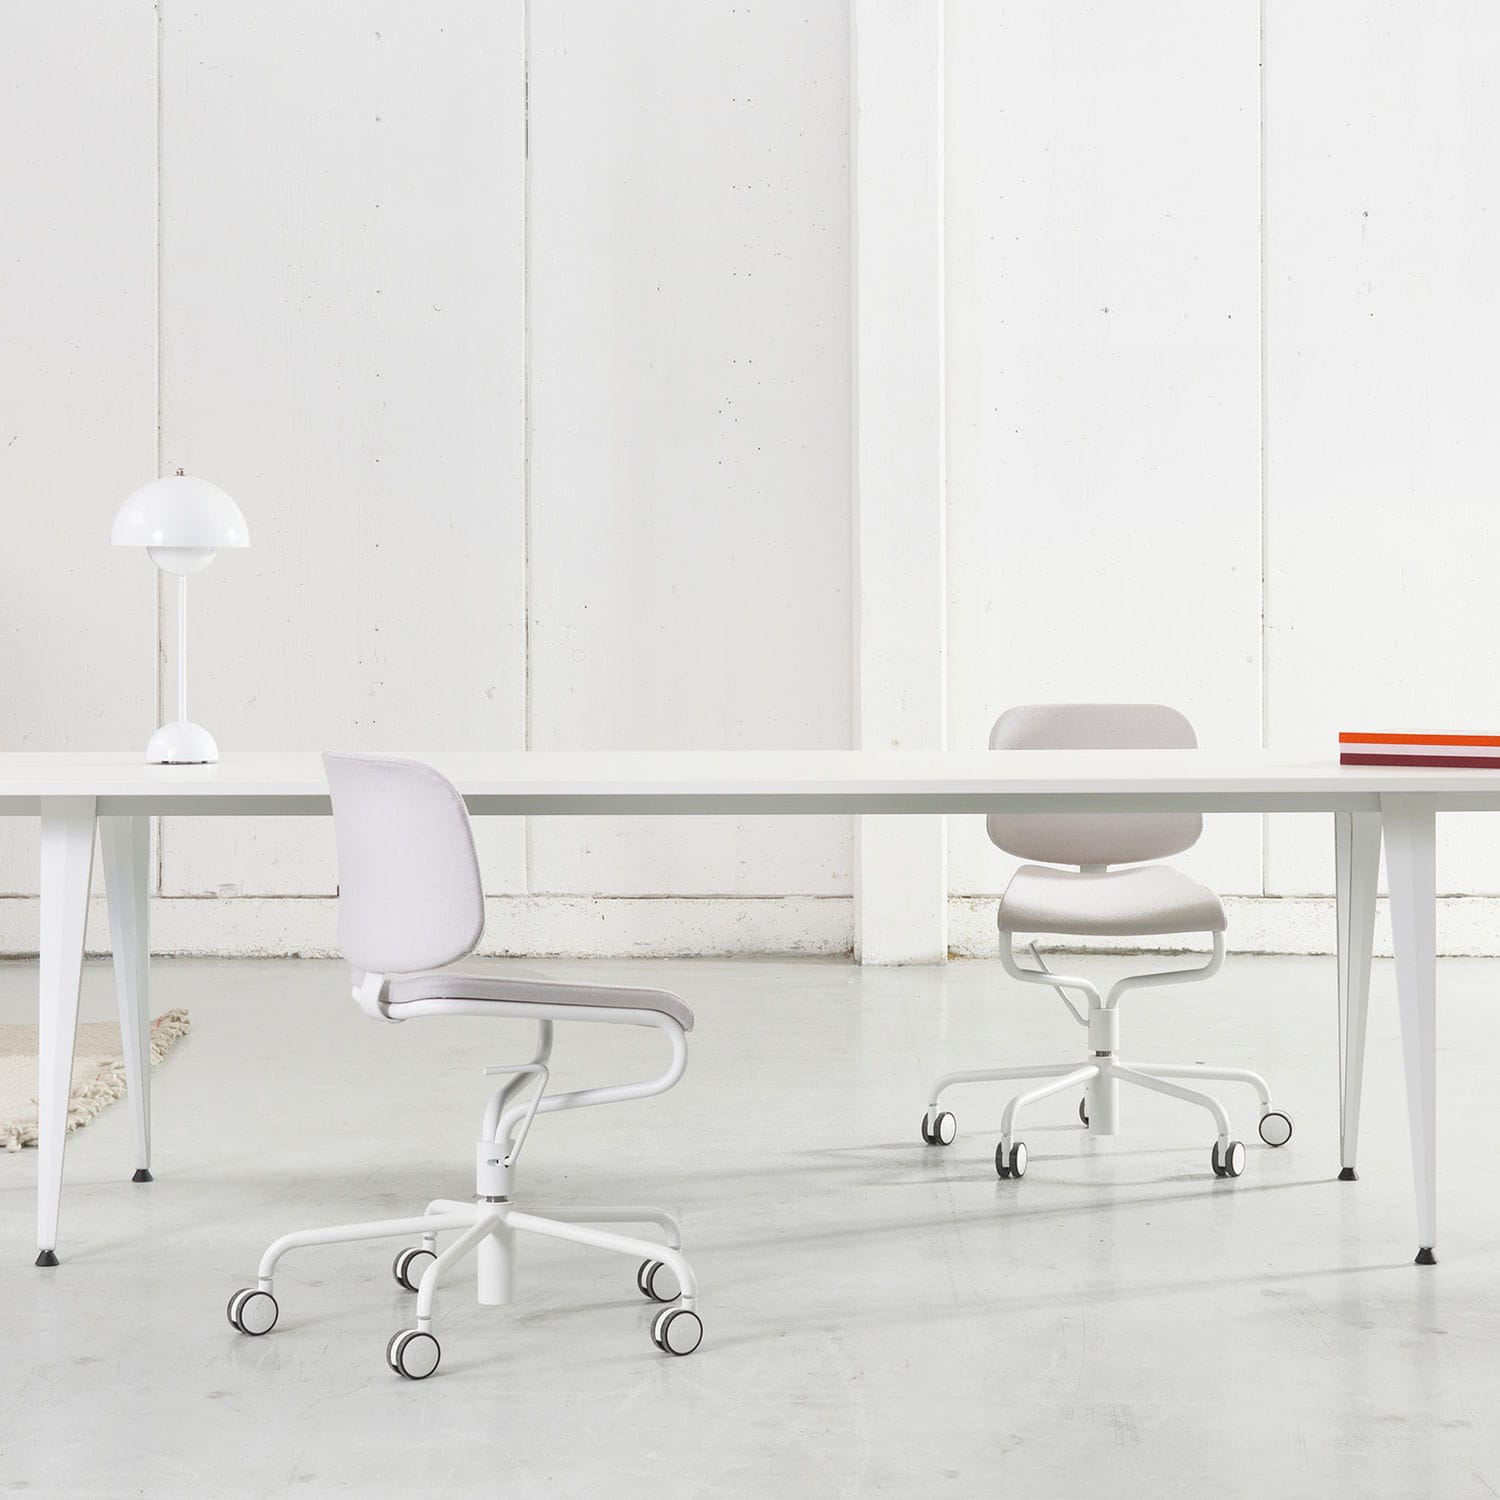 Merveilleux Contemporary Office Chair / Upholstered / On Casters / Swivel   ADD WORK By  Anya Sebton